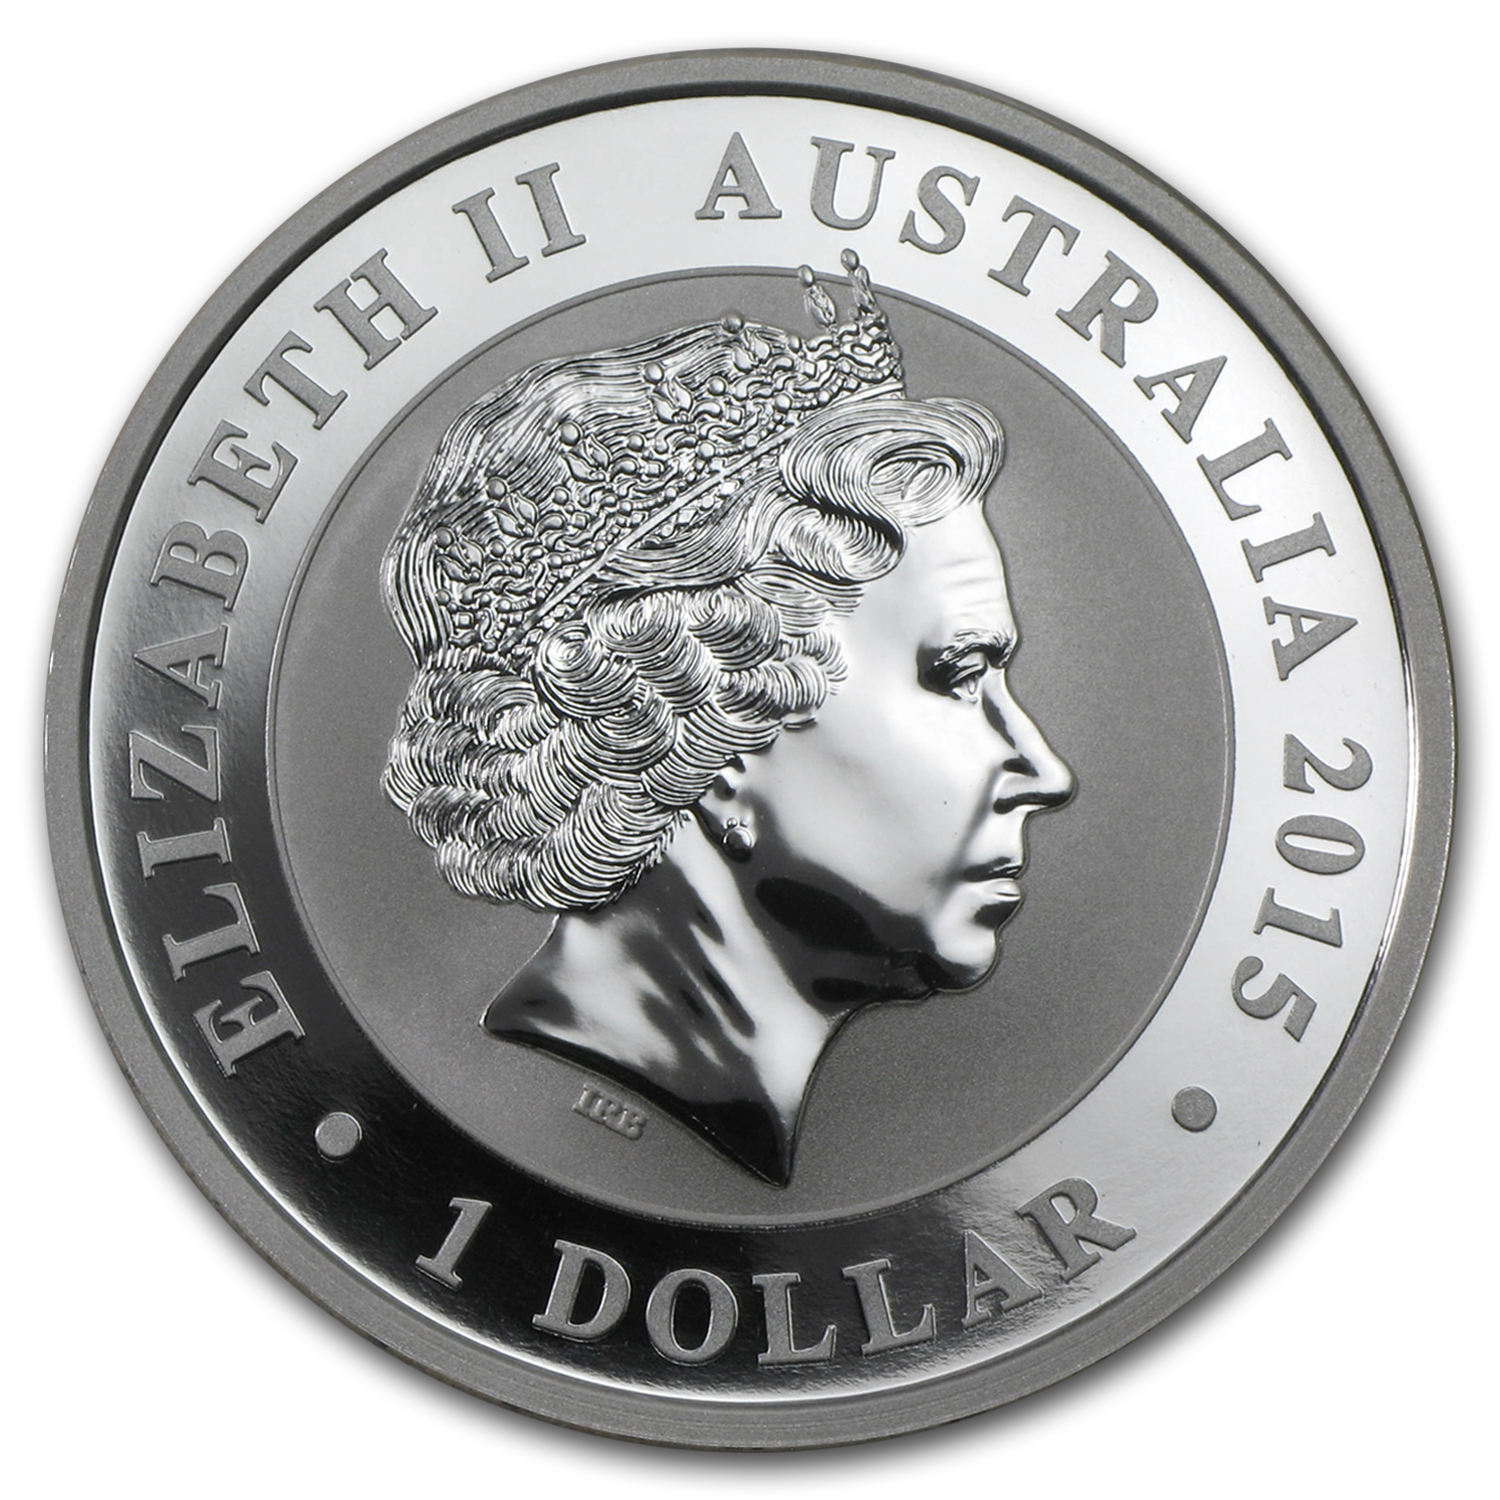 2015 1 oz Silver Australian Kookaburra (Sept. 5th)